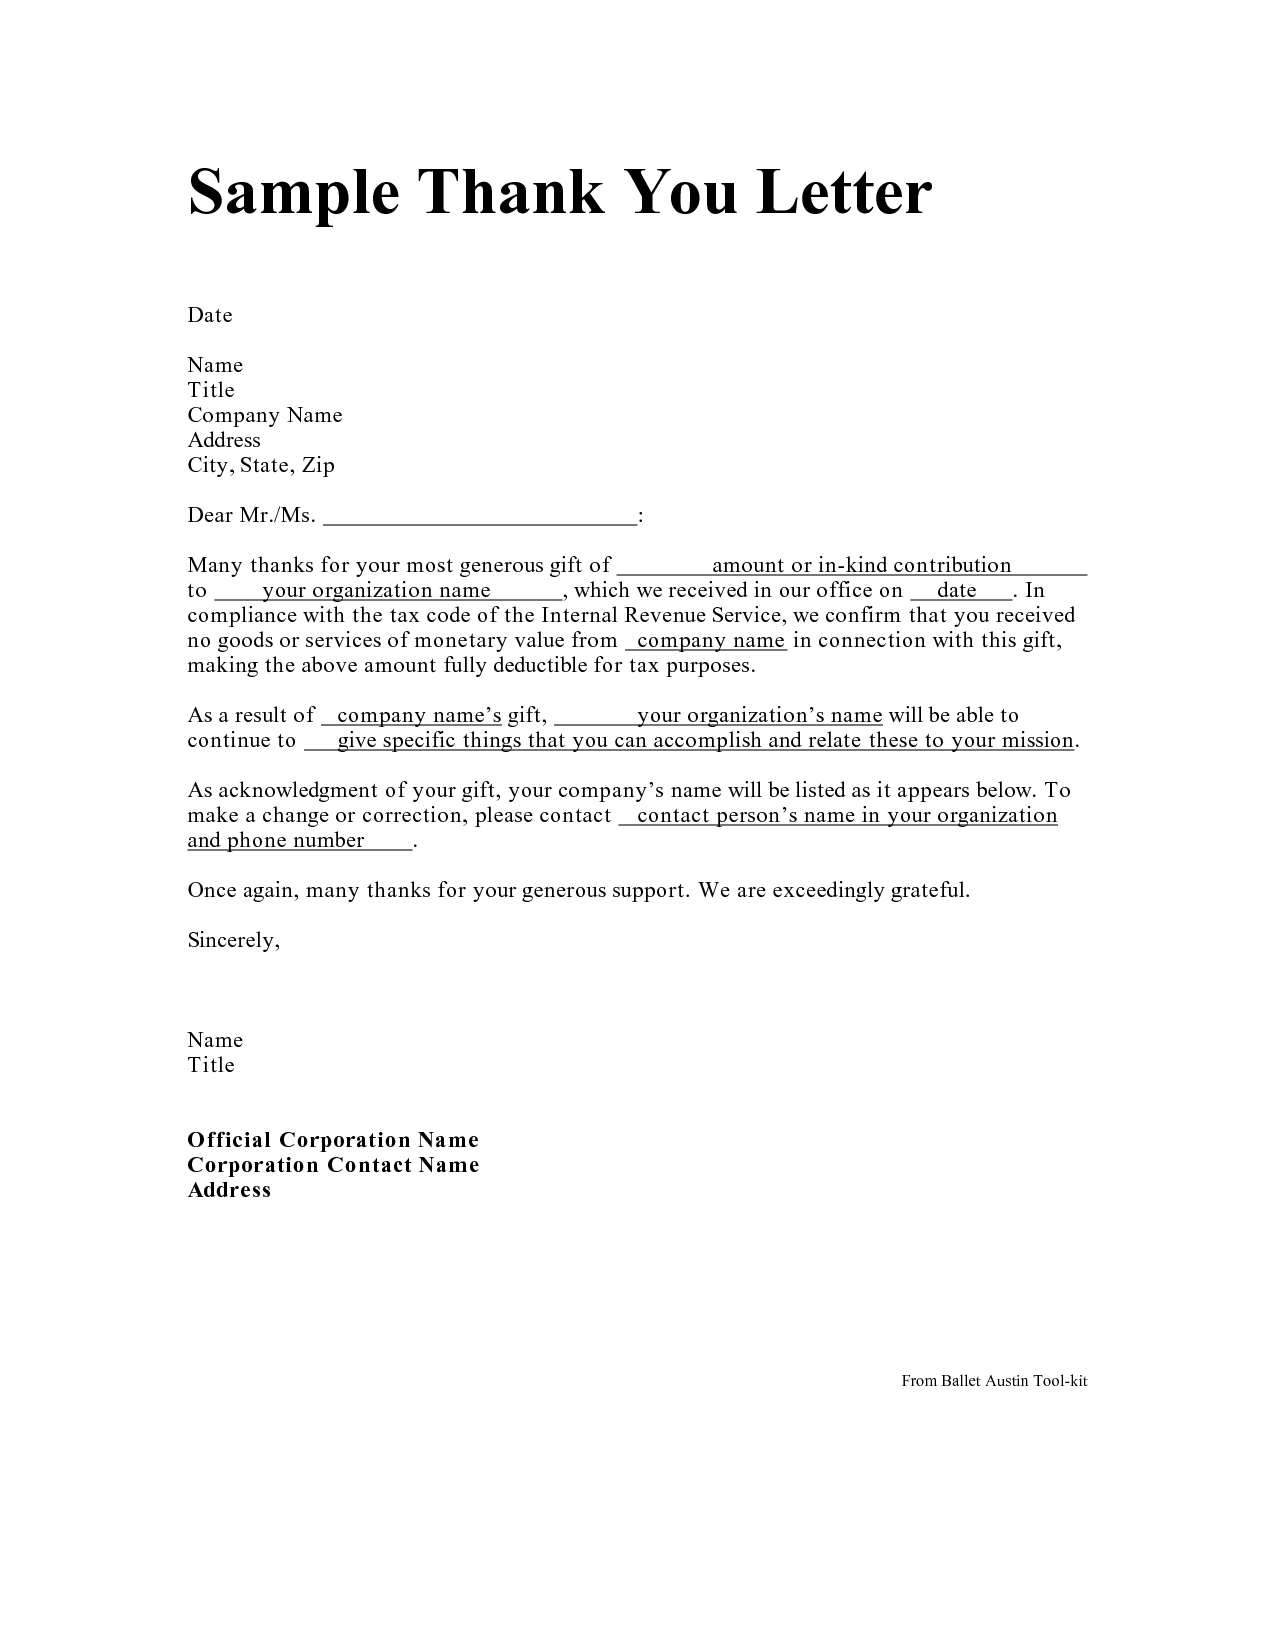 Letter Of Support Template for A Person - Personal Thank You Letter Personal Thank You Letter Samples